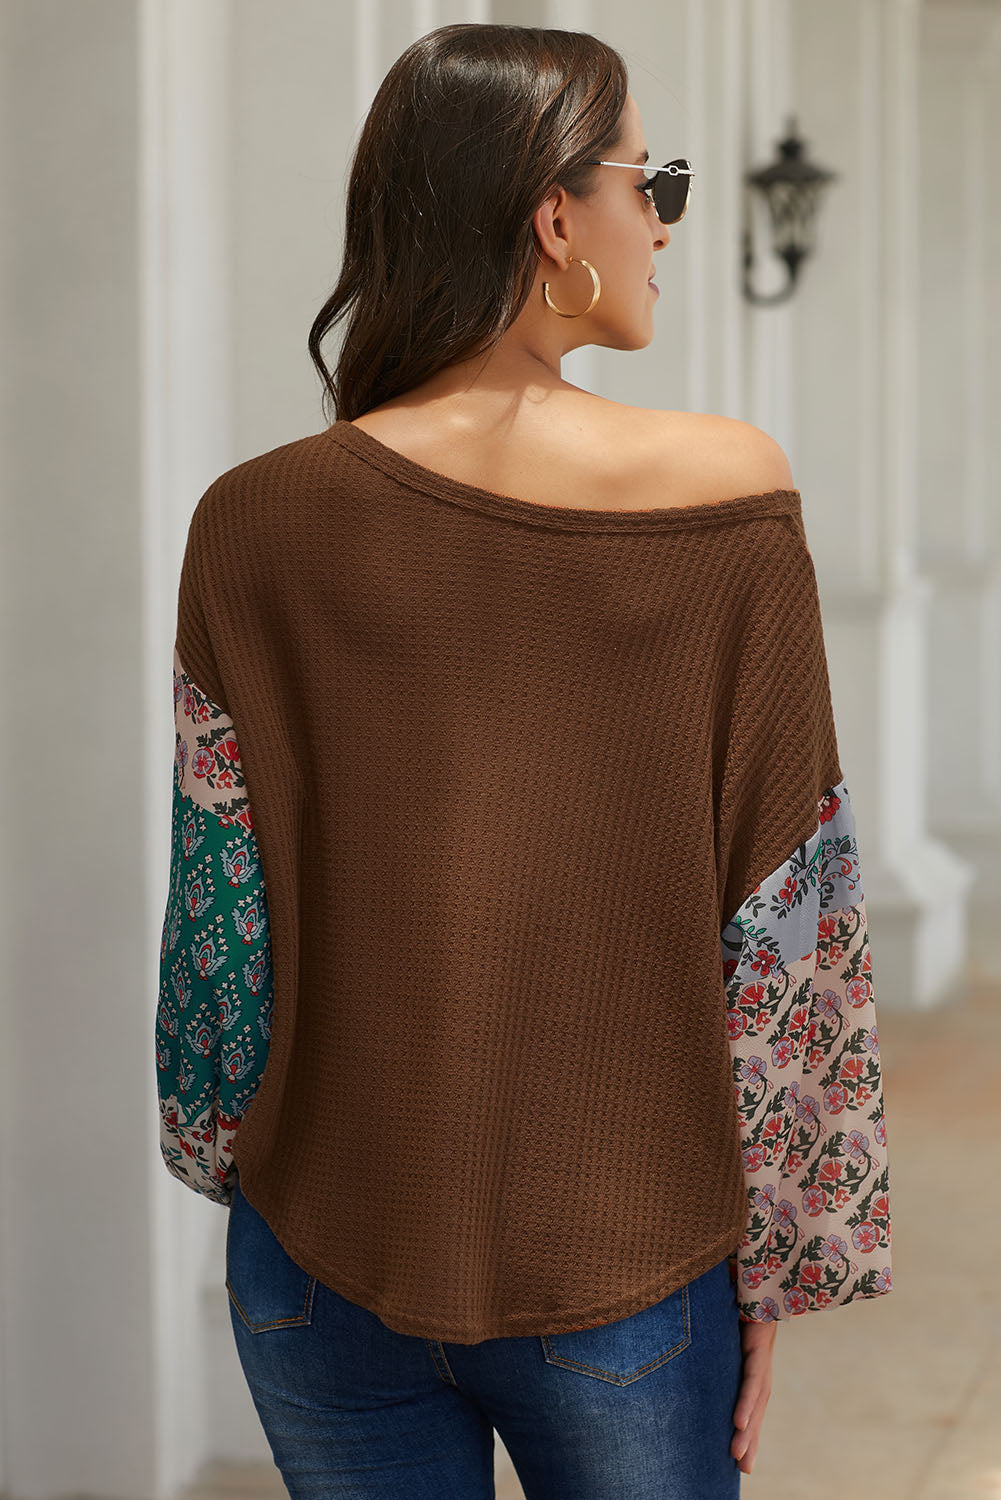 Brown Floral Sleeve Pullover Top Long Sleeve Tops Discount Designer Fashion Clothes Shoes Bags Women Men Kids Children Black Owned Business